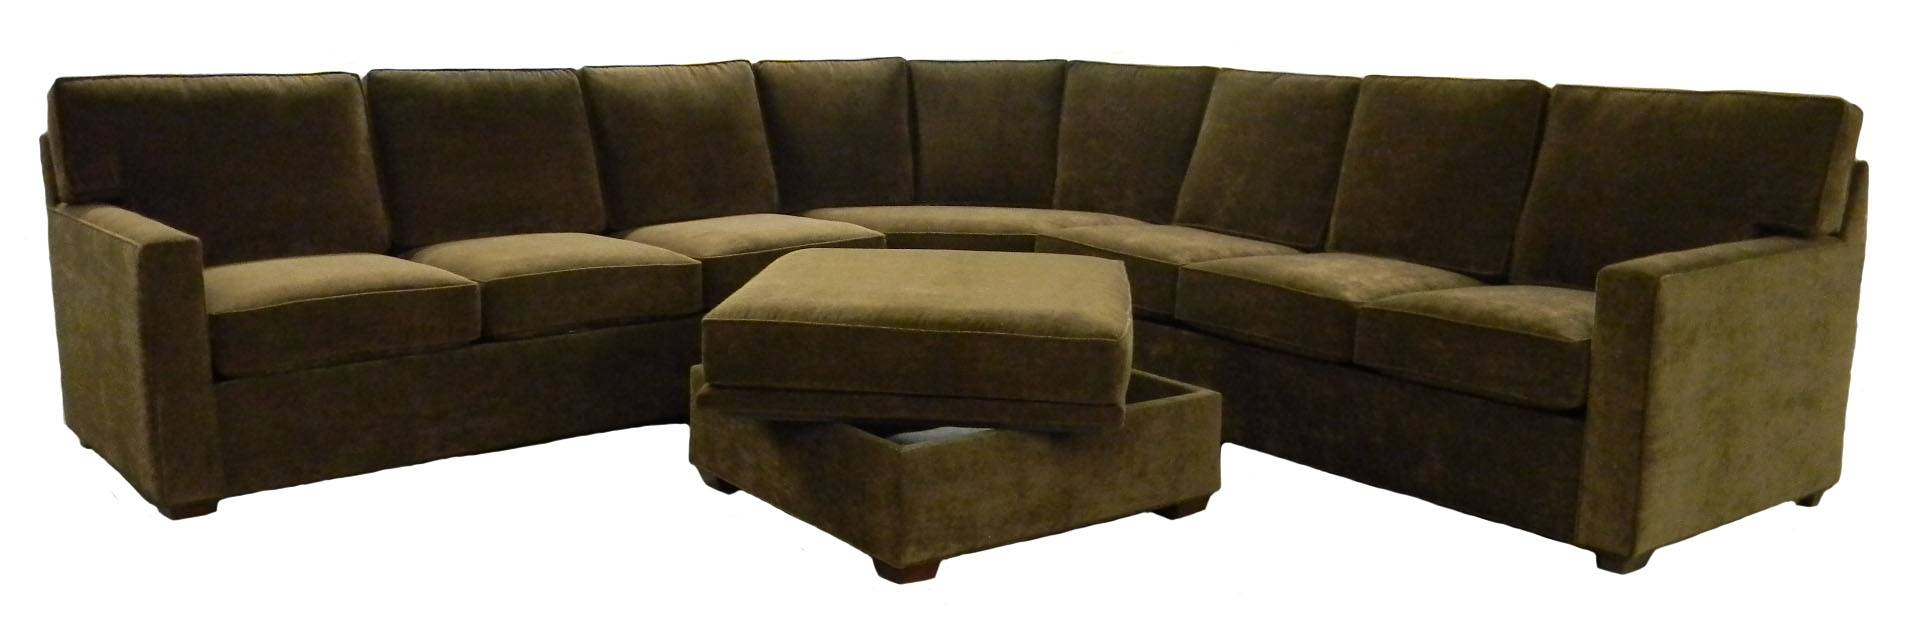 Photos Examples Custom Sectional Sofas Carolina Chair Furniture with Sectinal Sofas (Image 18 of 30)